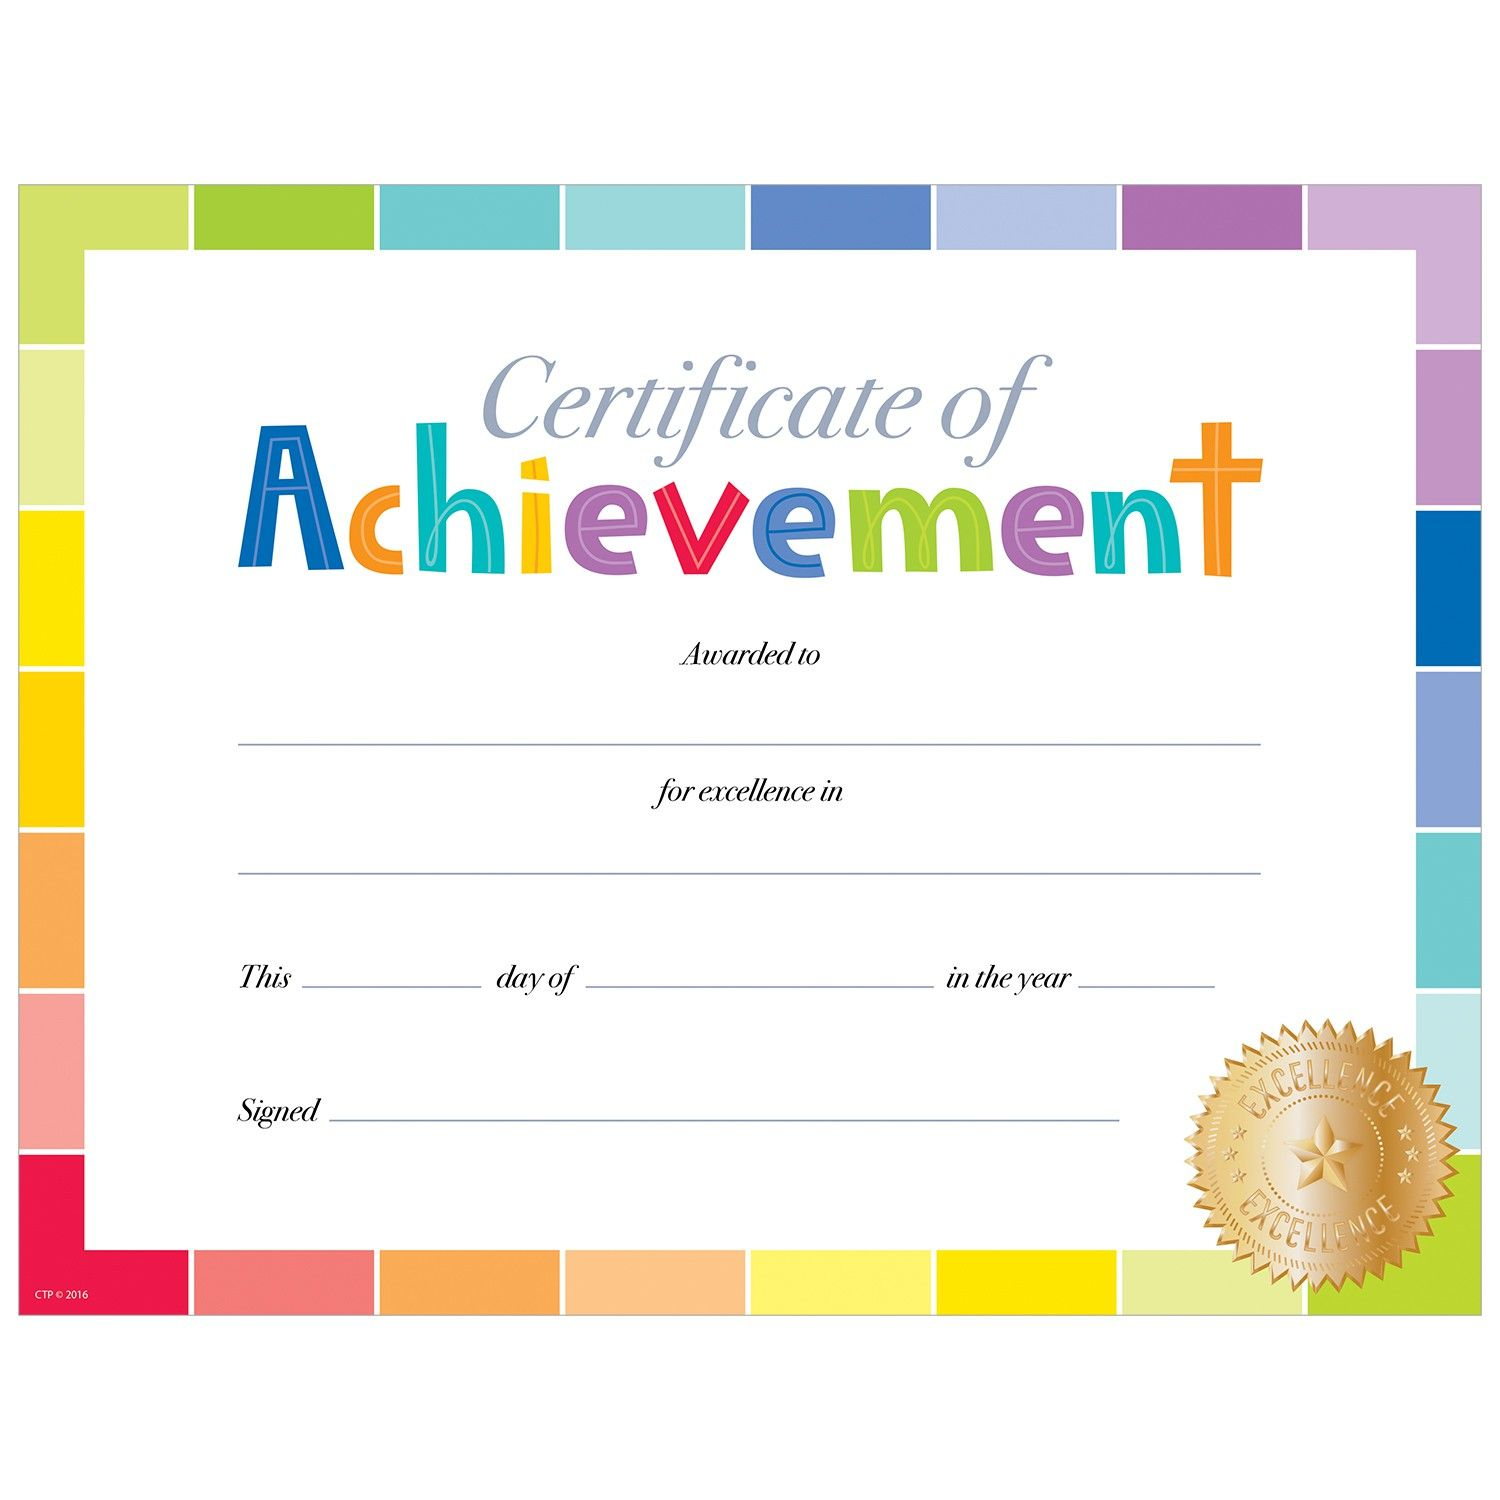 Award certificates kids art google search scmac certificates award certificates kids art google search yadclub Choice Image